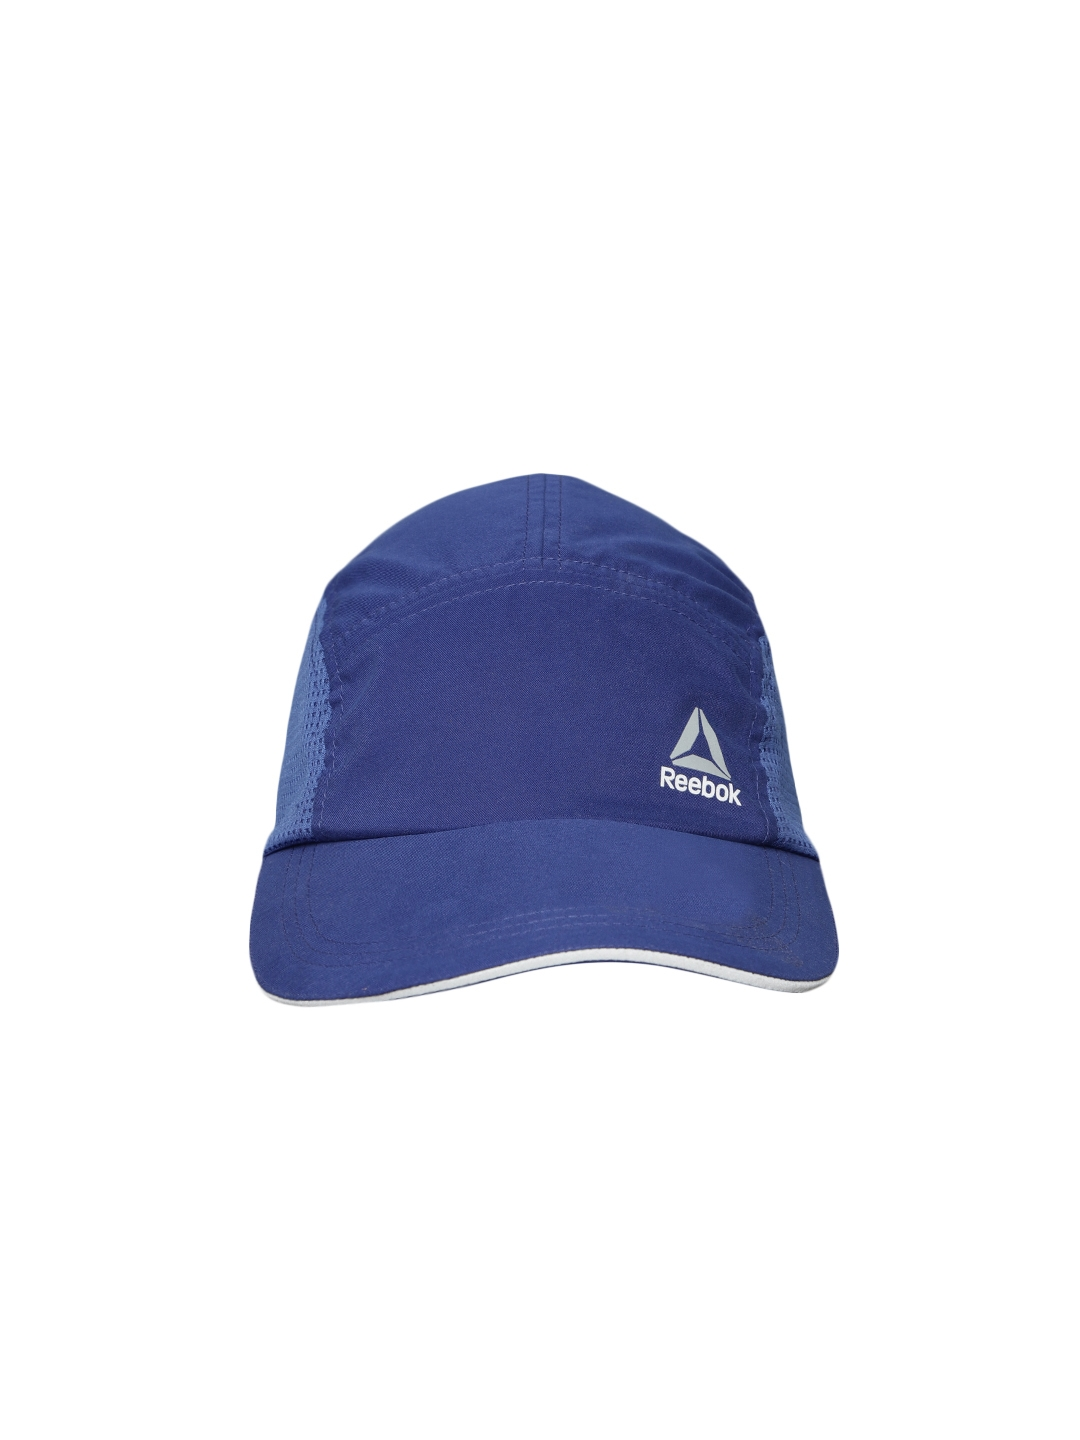 Buy Reebok Unisex Blue OS PERF Solid Running Cap - Caps for Unisex ... 6f0af71bd5f